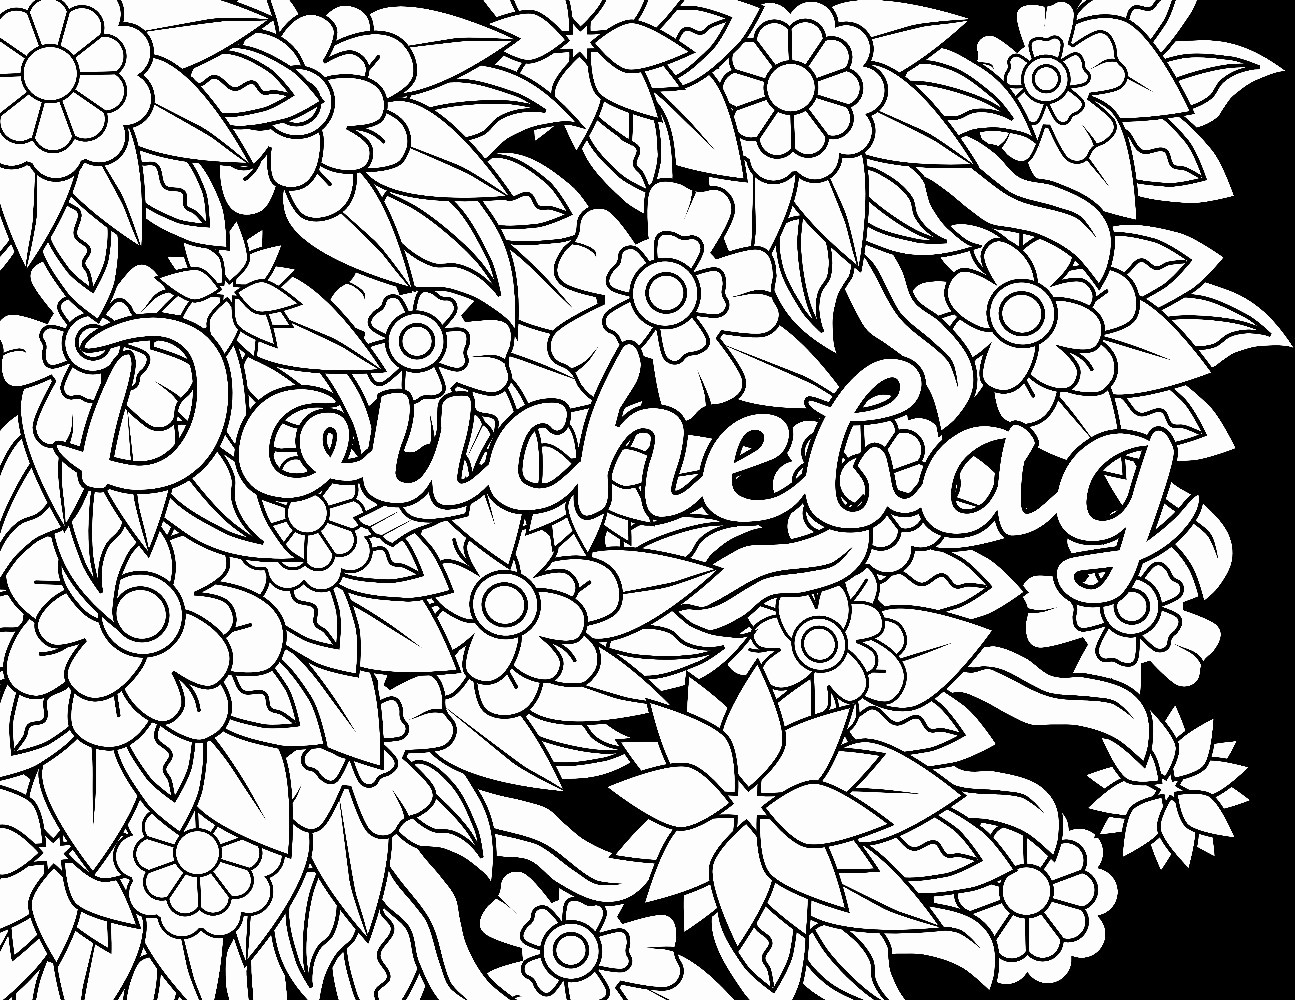 flower vase of printable coloring pages flowers cool vases flower vase coloring regarding printable coloring pages flowers cool vases flower vase coloring page pages flowers in a top i